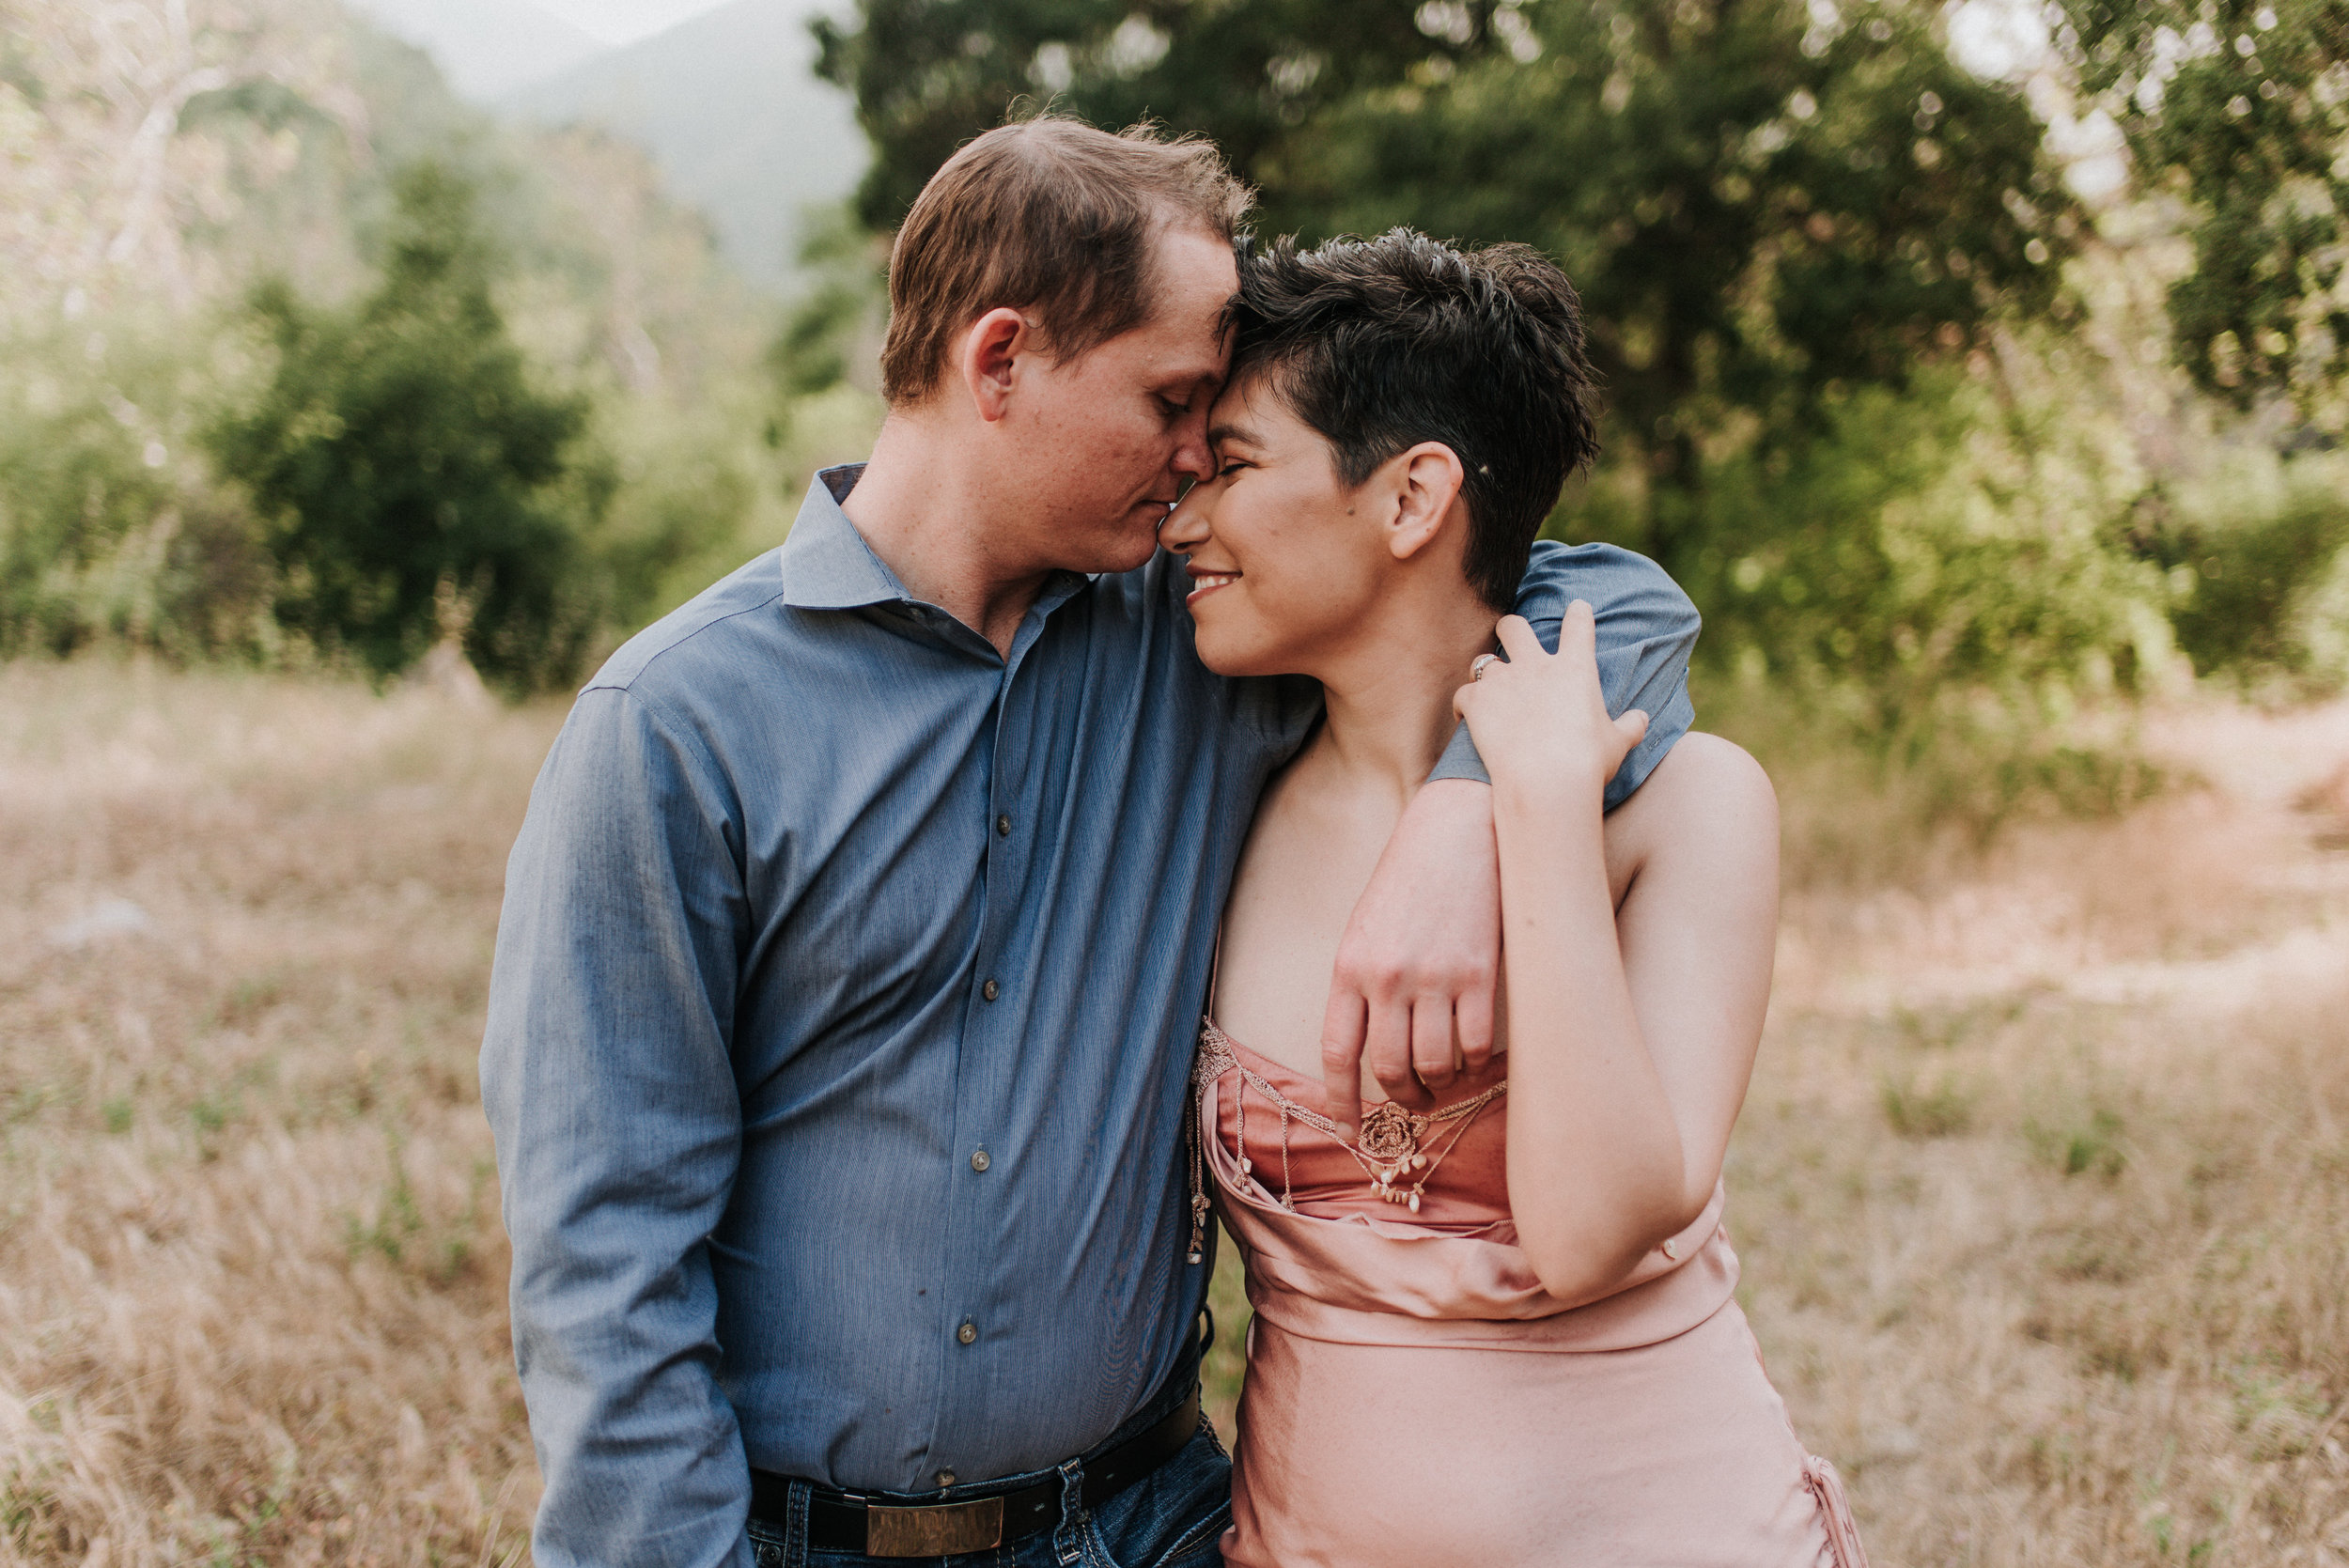 2019-06-17_Danielle_and_Brandon_-_Engaged_-_Silverado-41.jpg